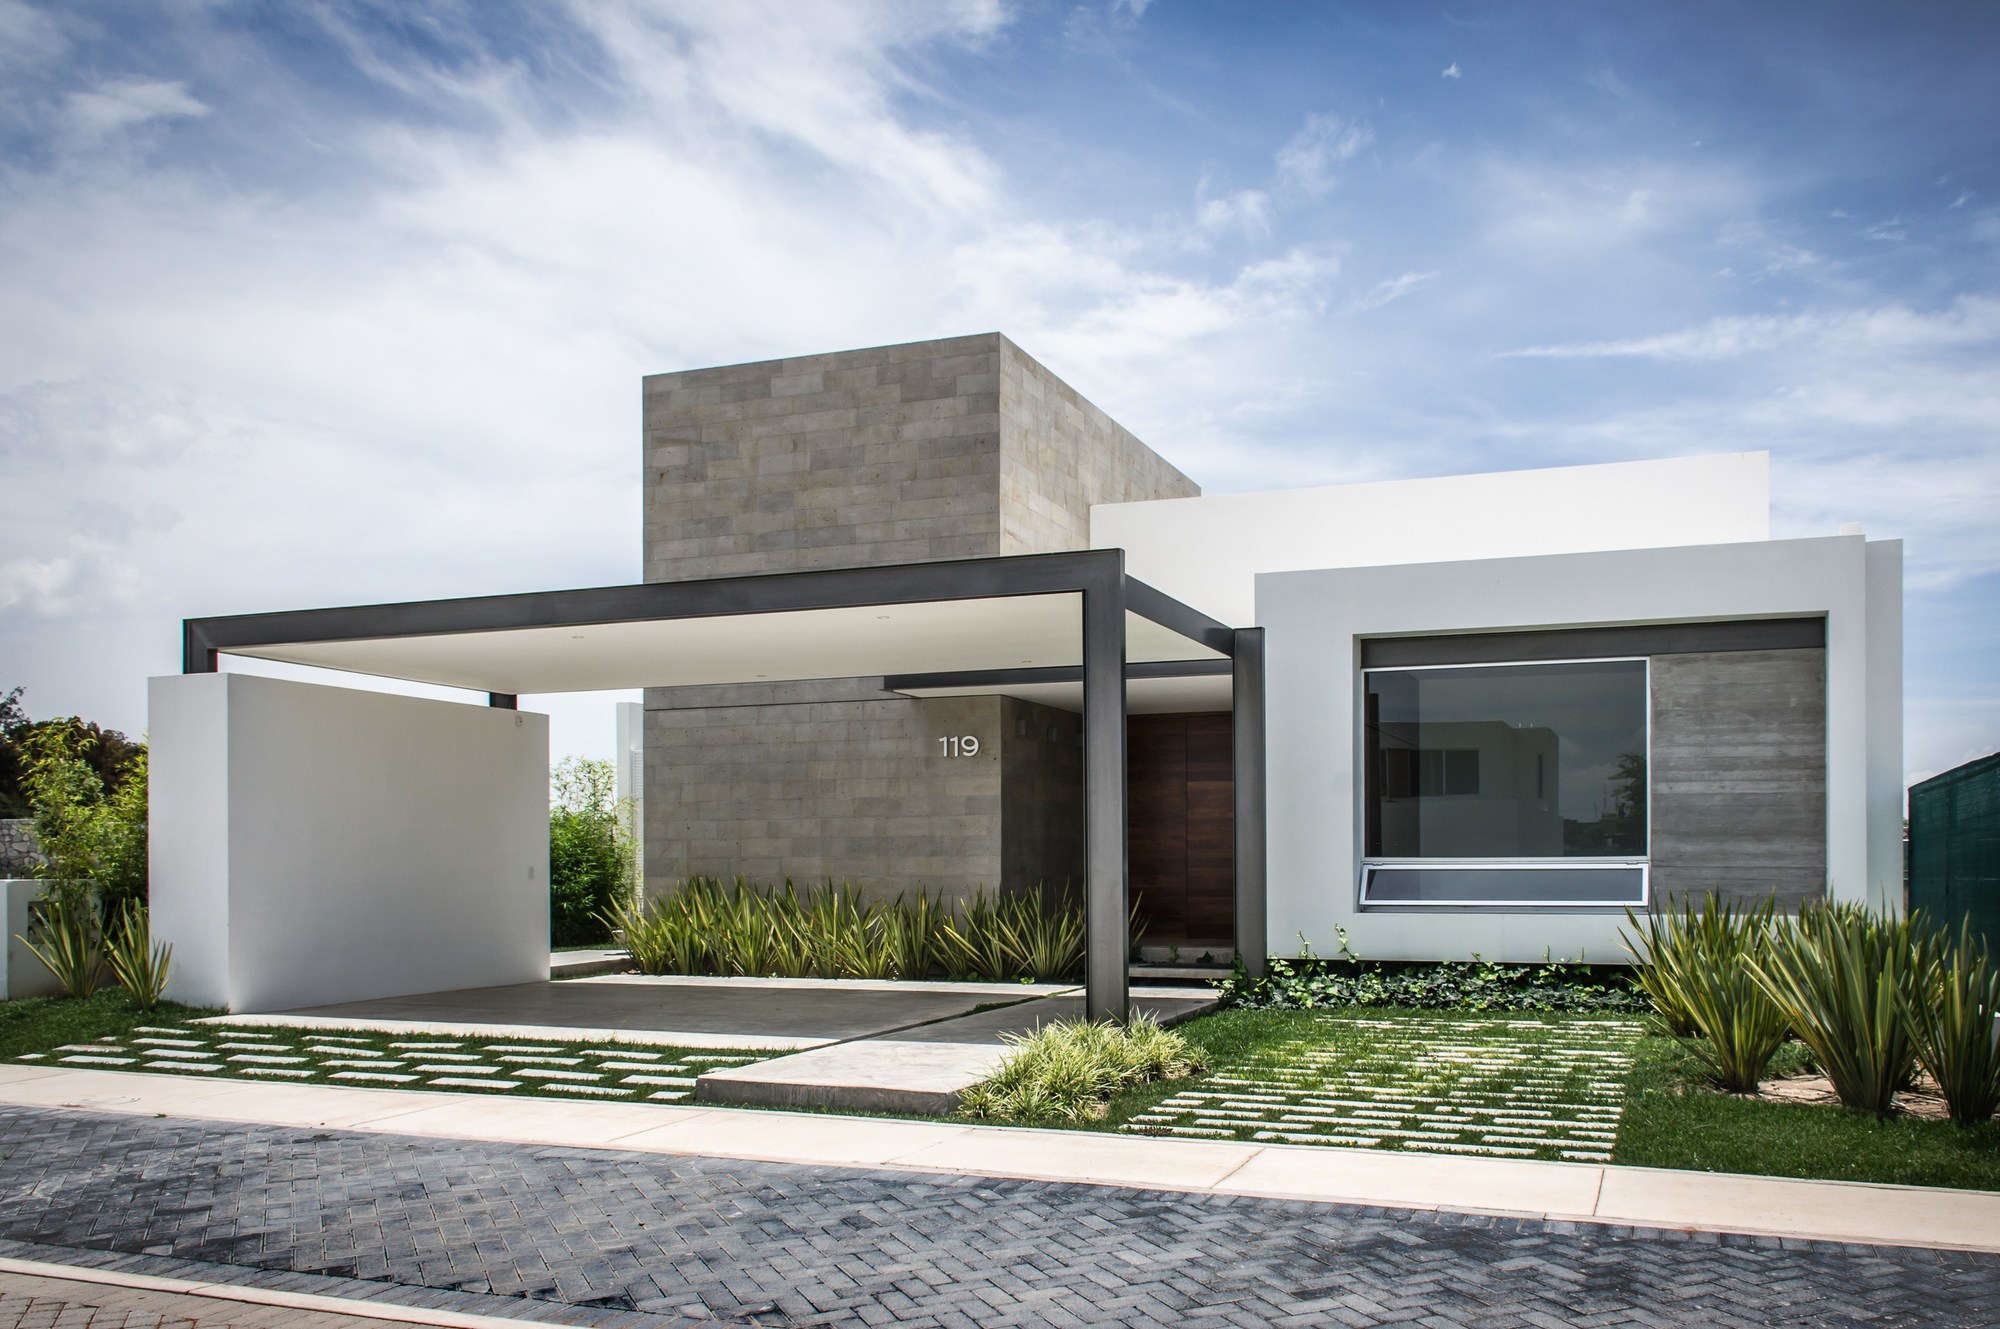 T02 adi arquitectura y dise o interior archdaily m xico for Imagenes arquitectura